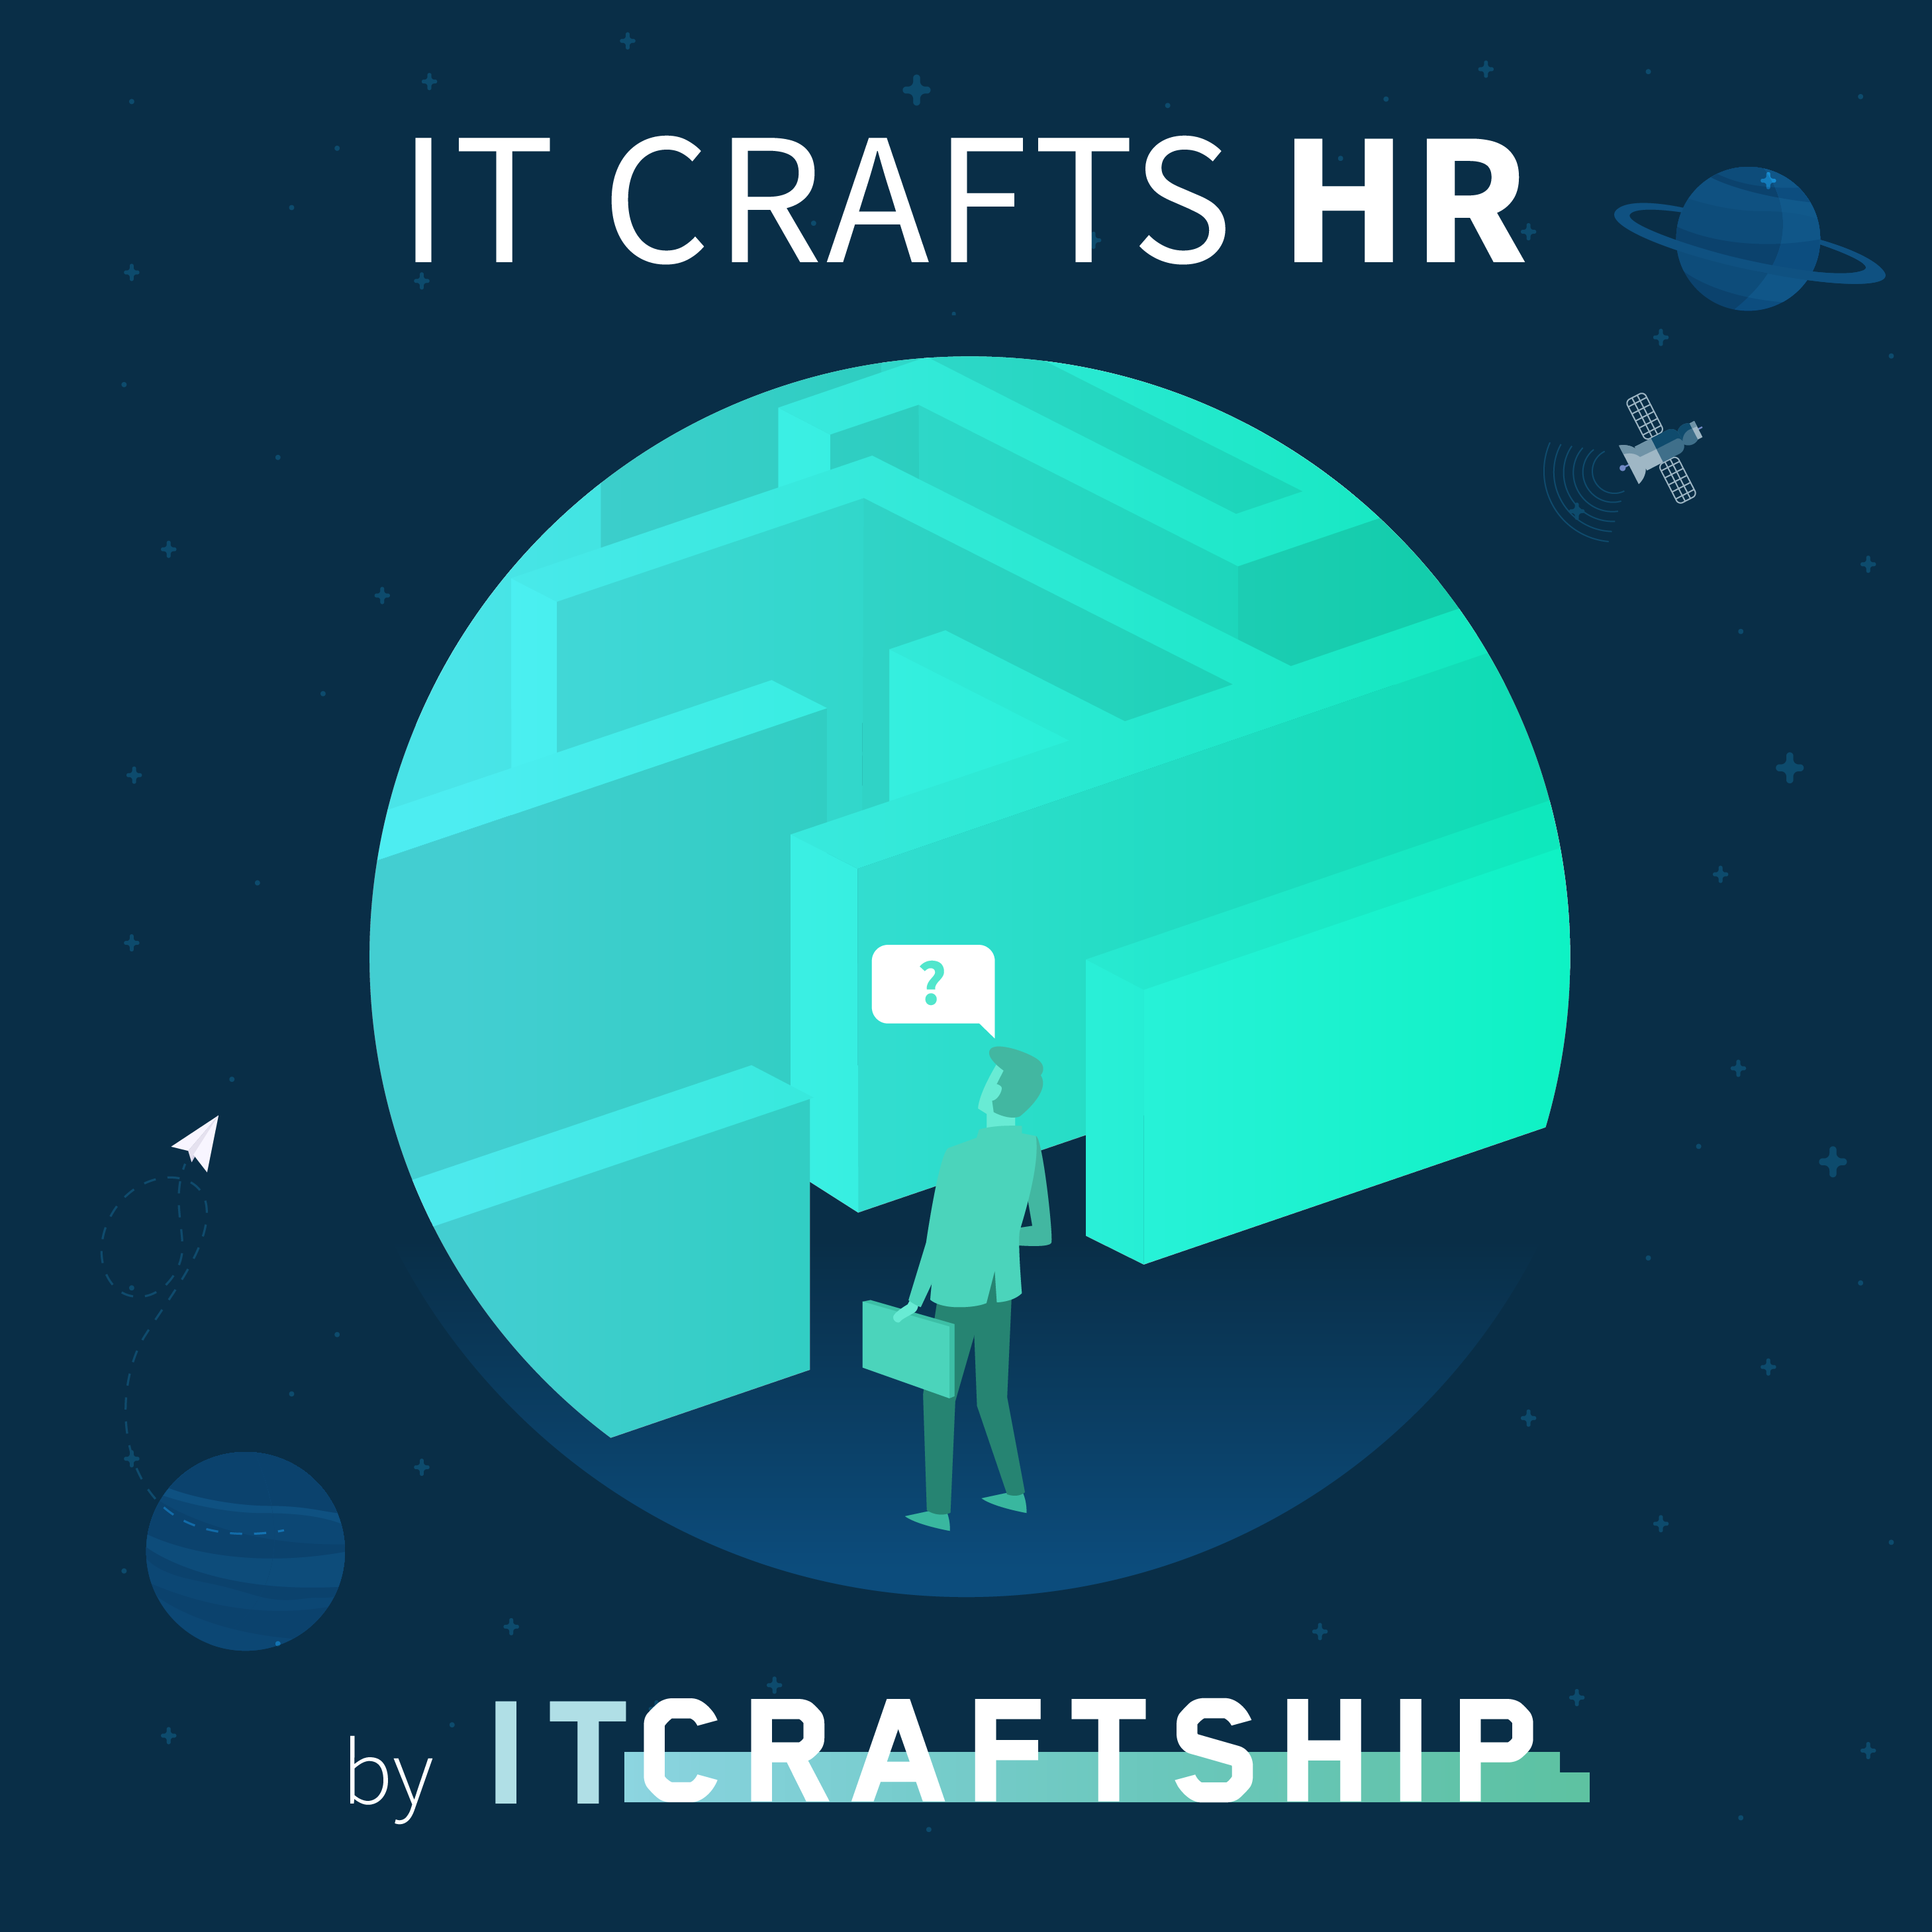 IT Crafts HR – Kaylie Boogaerts from LaterPay